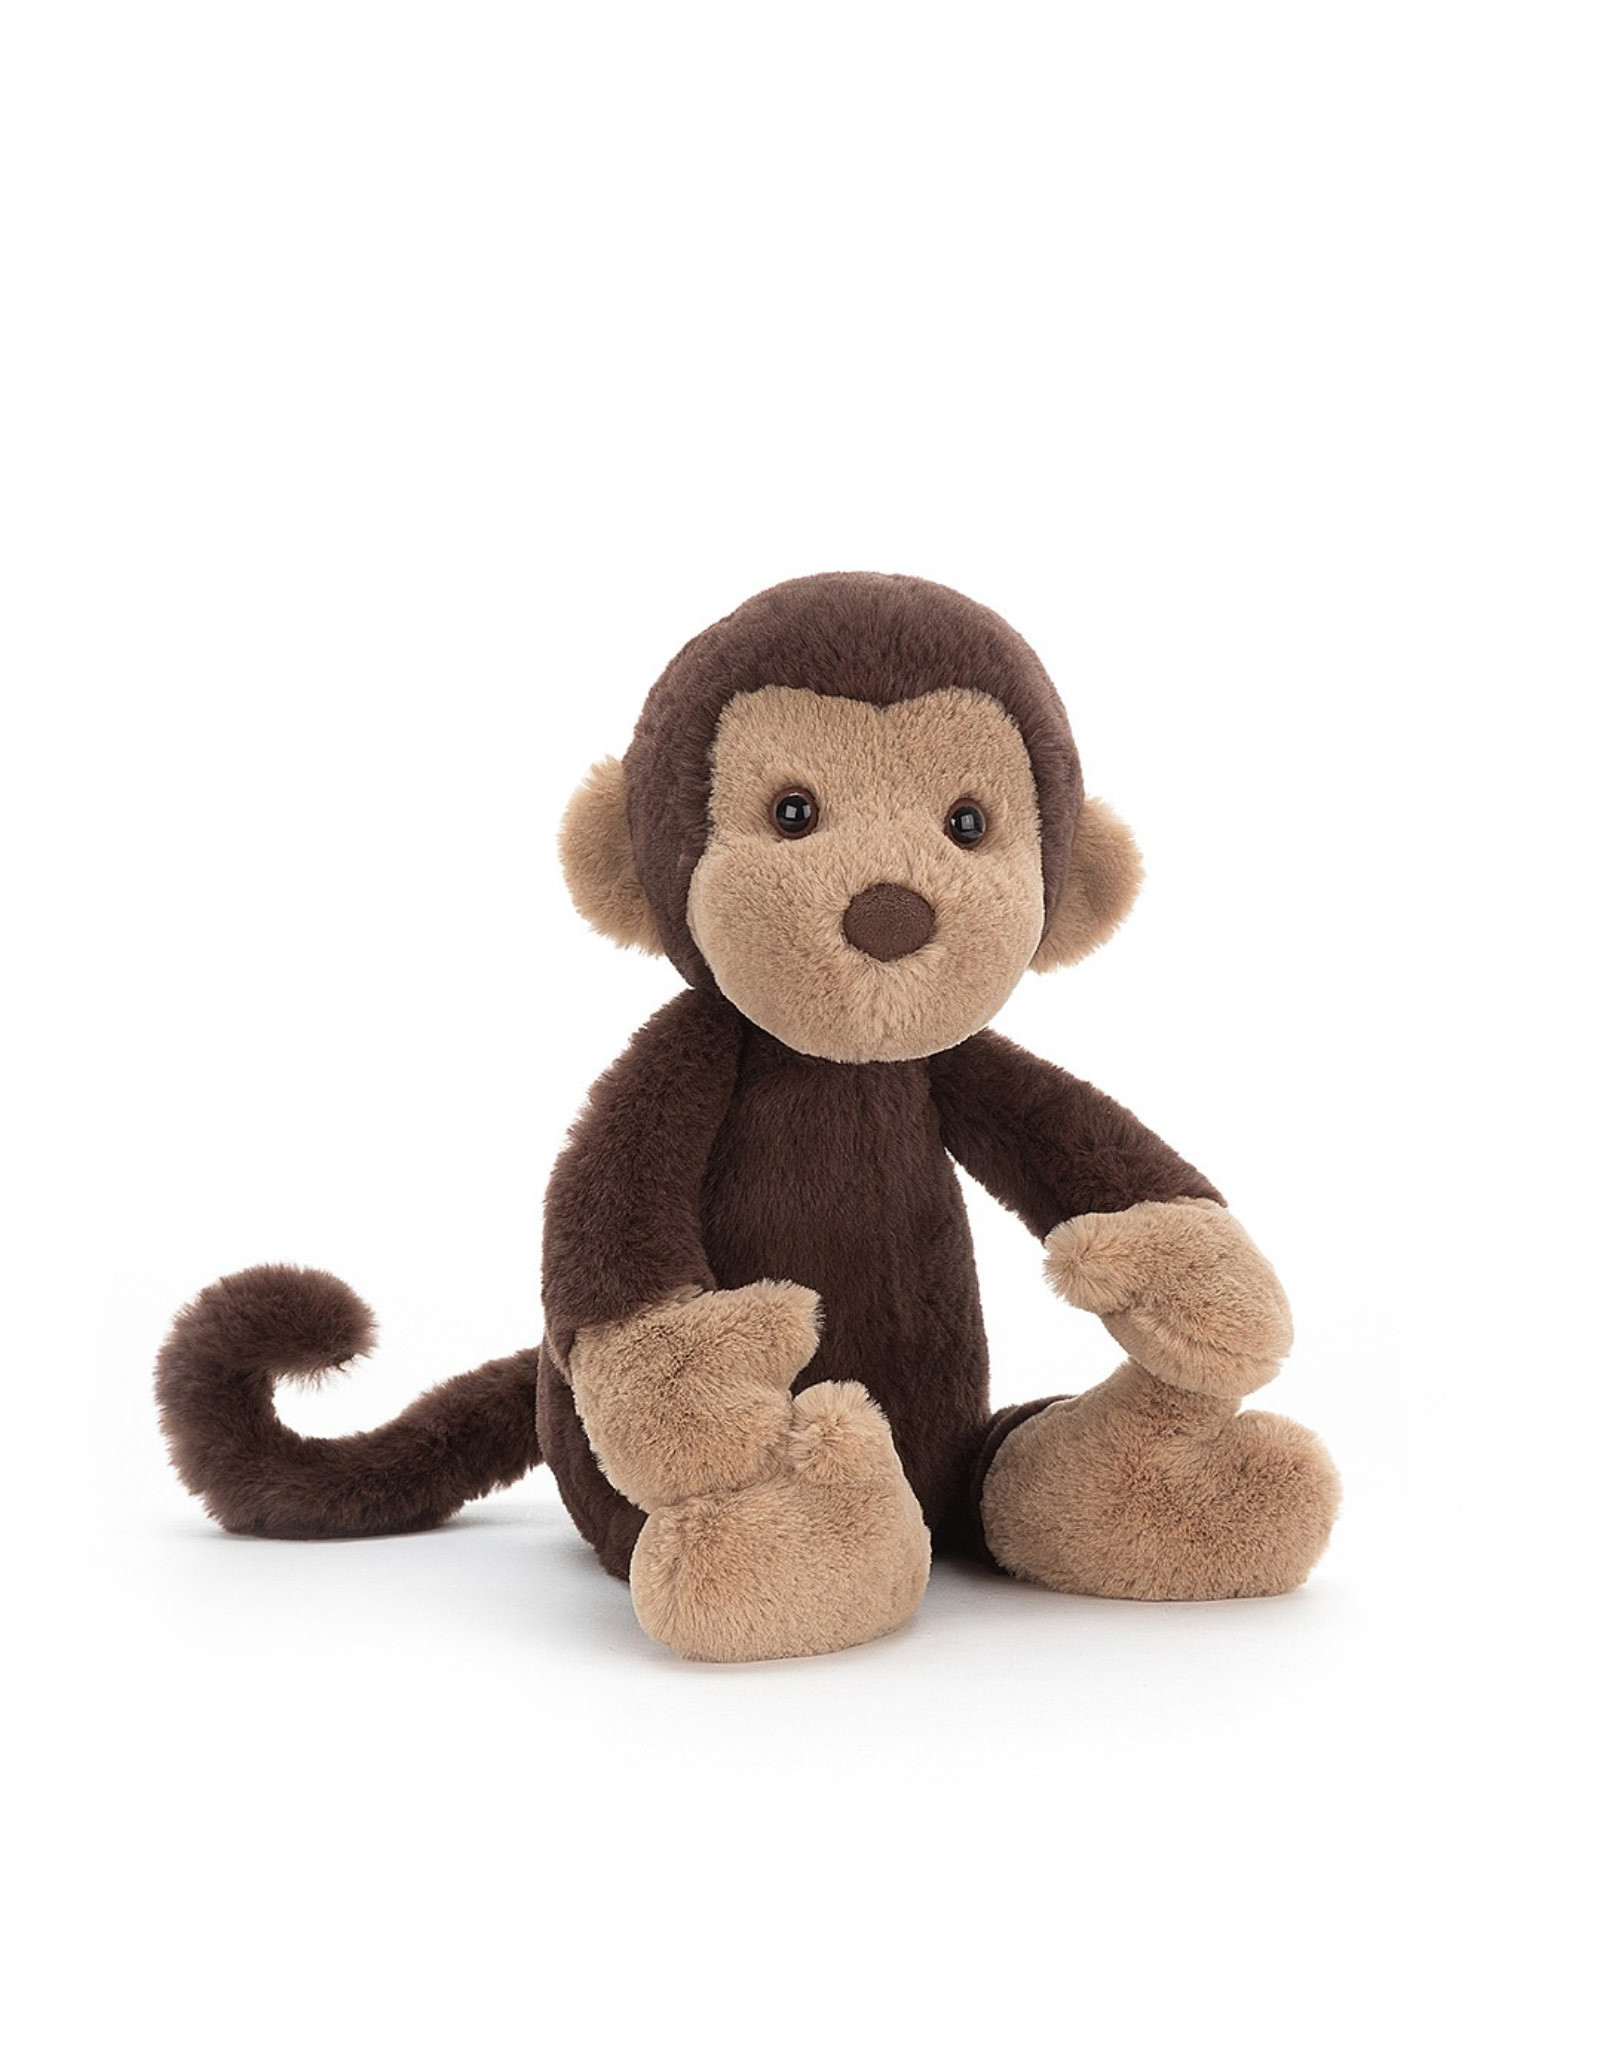 Jelly Cat Stuffed animal - Medium Wumper Monkey